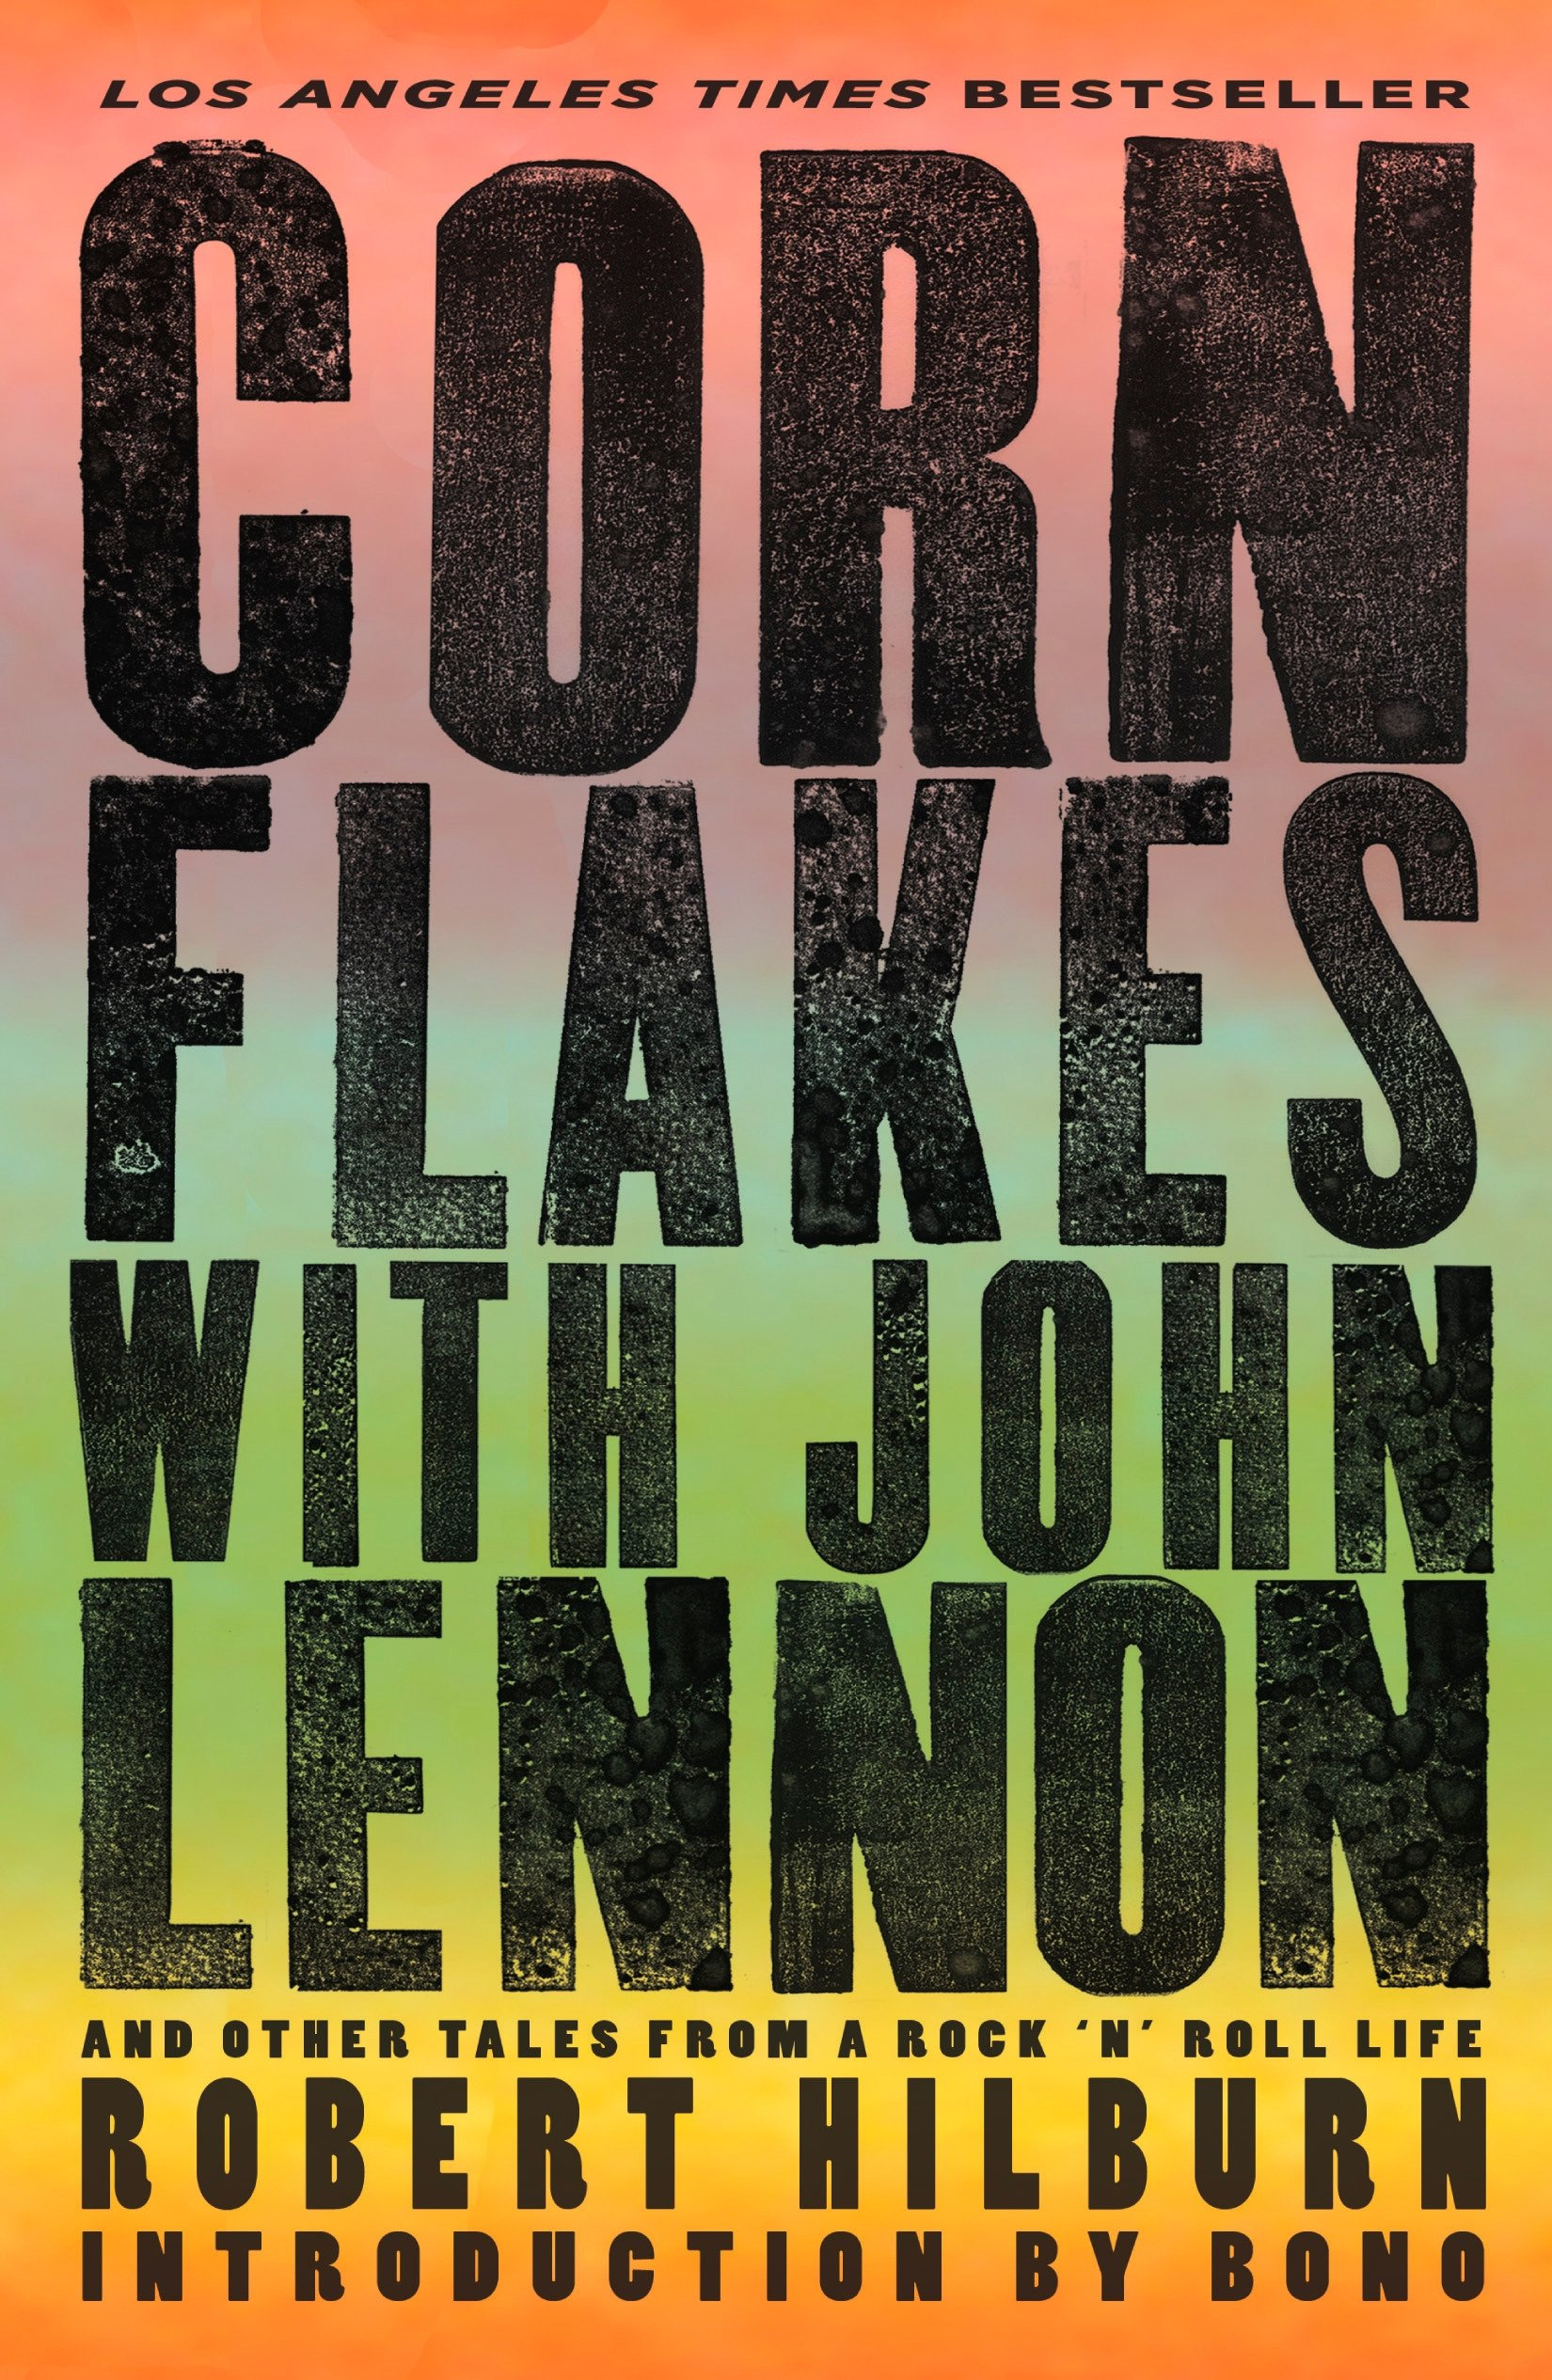 Corn Flakes With John Lennon And Other Tales From A Rock N Roll